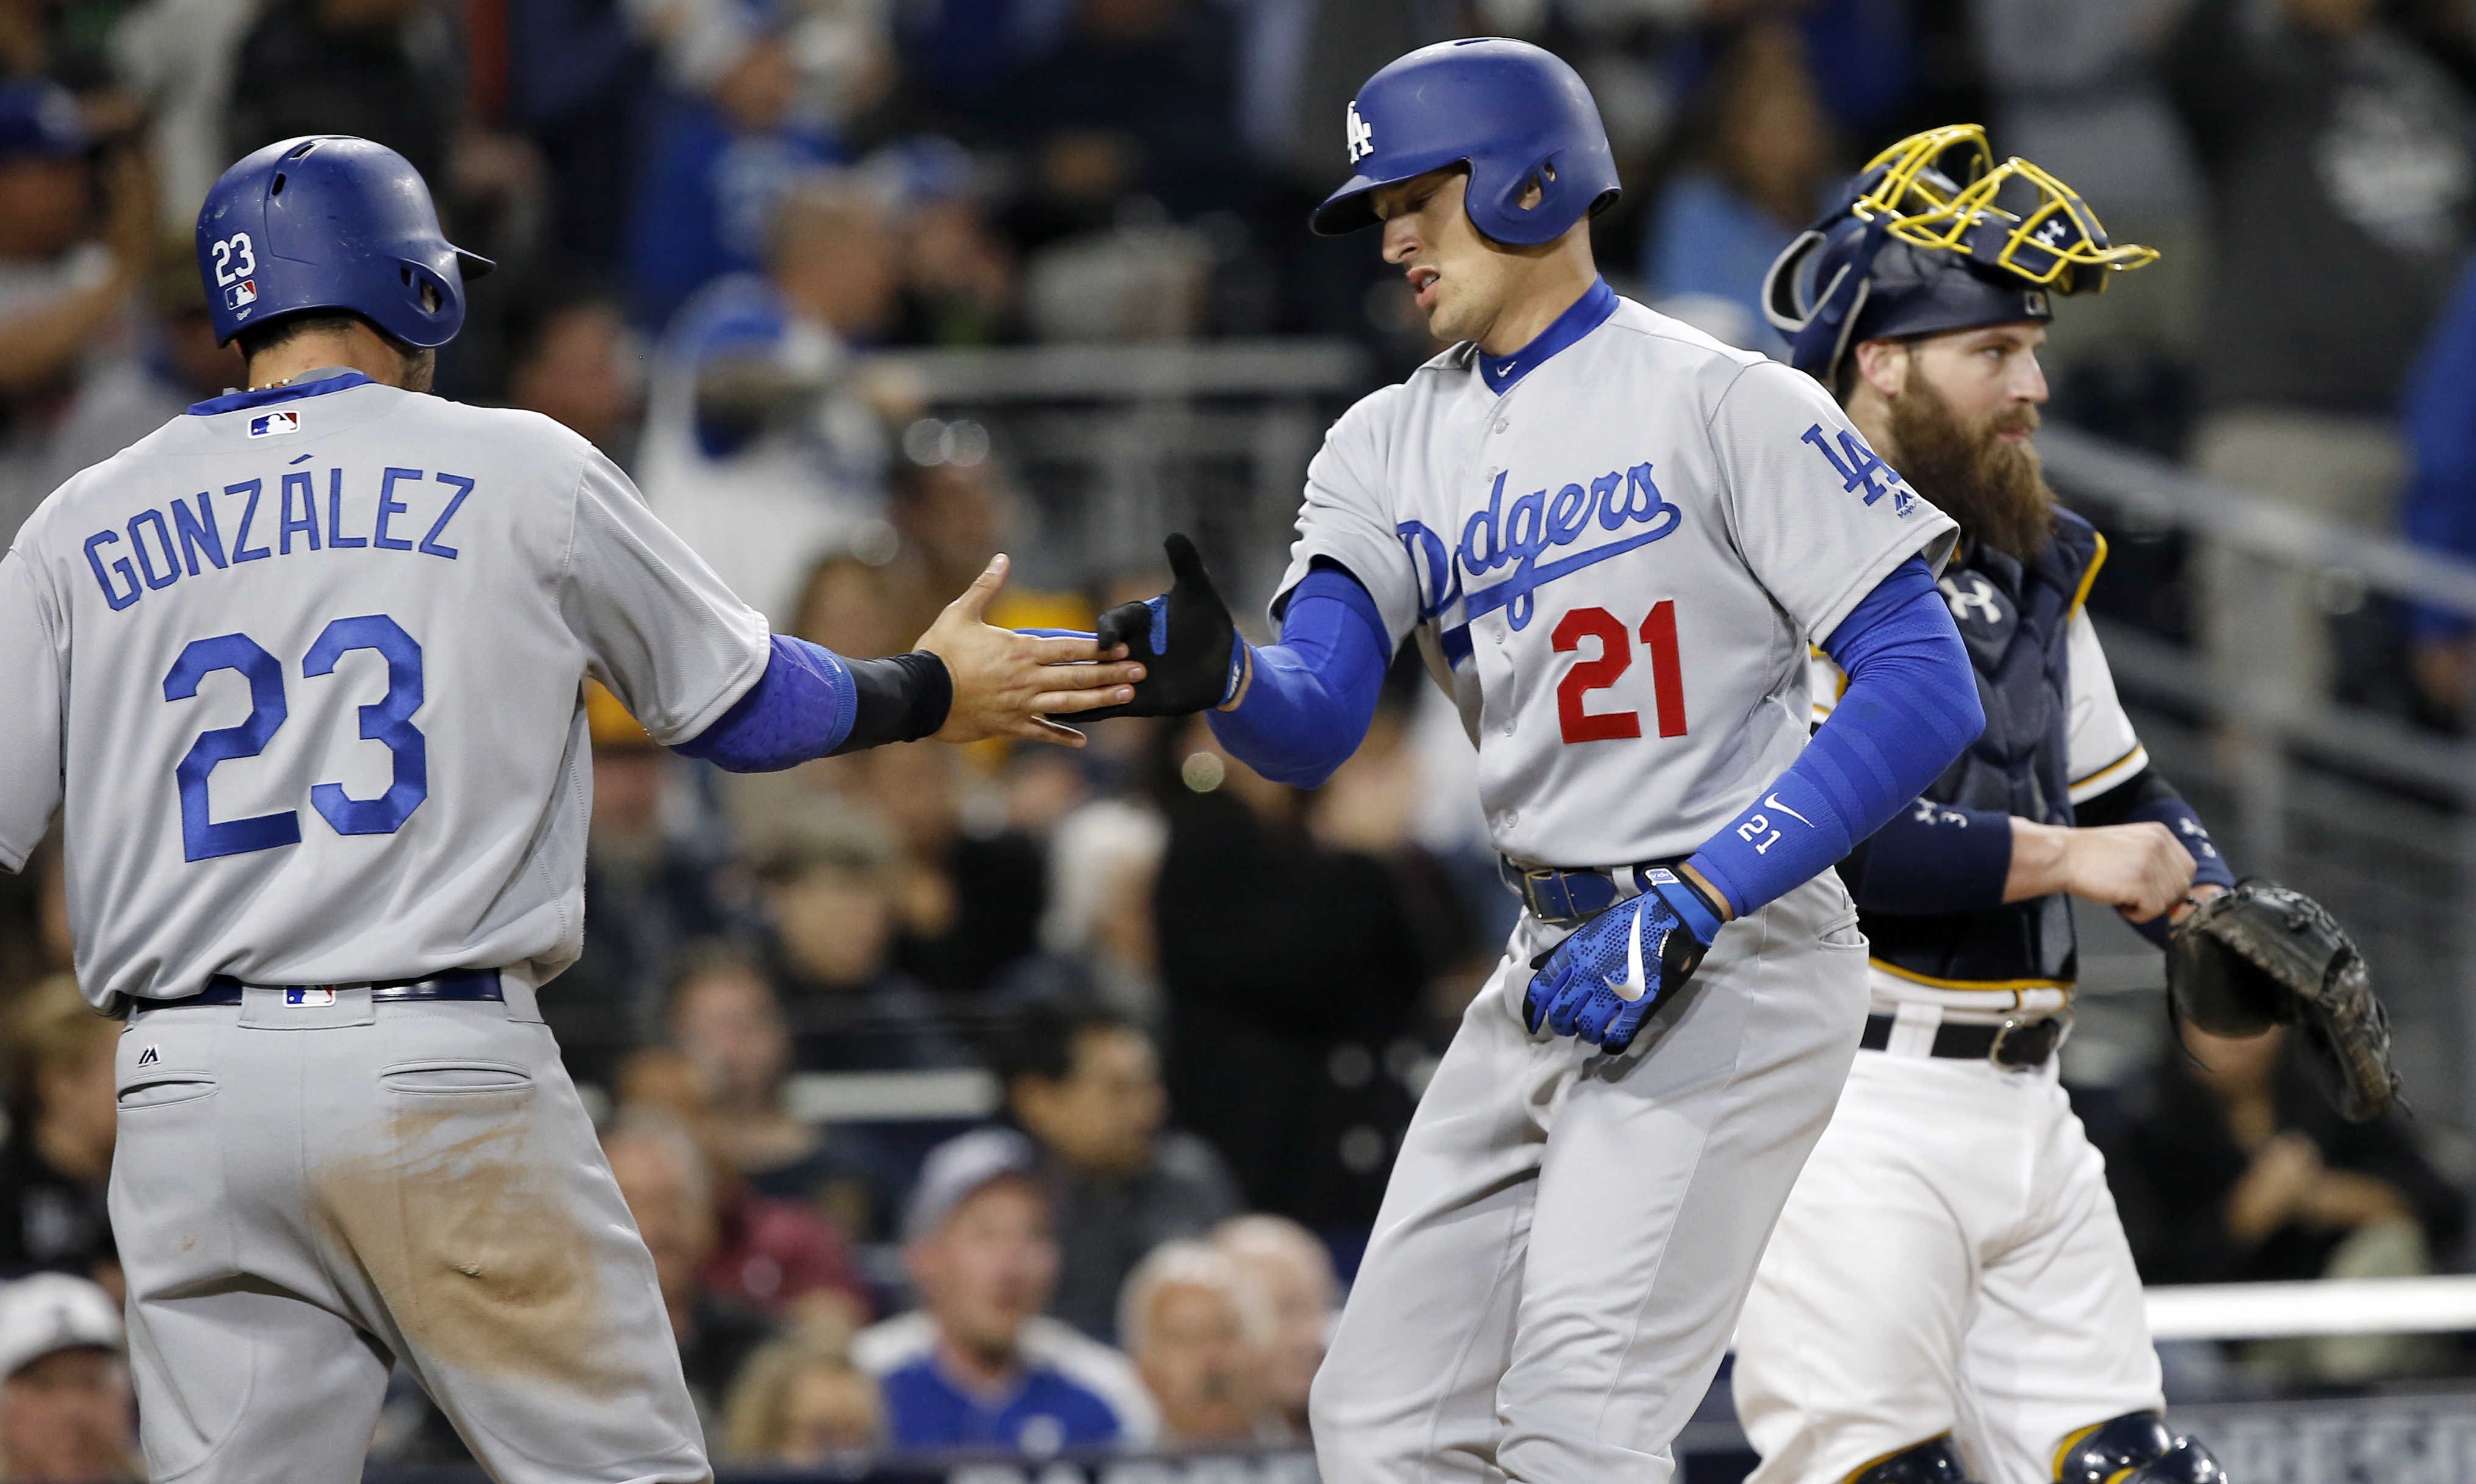 Los Angeles Dodgers' Adrian Gonzalez, left, congratulates Trayce Thompson, who hit a two-run home run, as San Diego Padres catcher Derek Norris looks away during the seventh inning of a baseball game in San Diego, Saturday, May 21, 2016. (AP Photo/Alex Ga